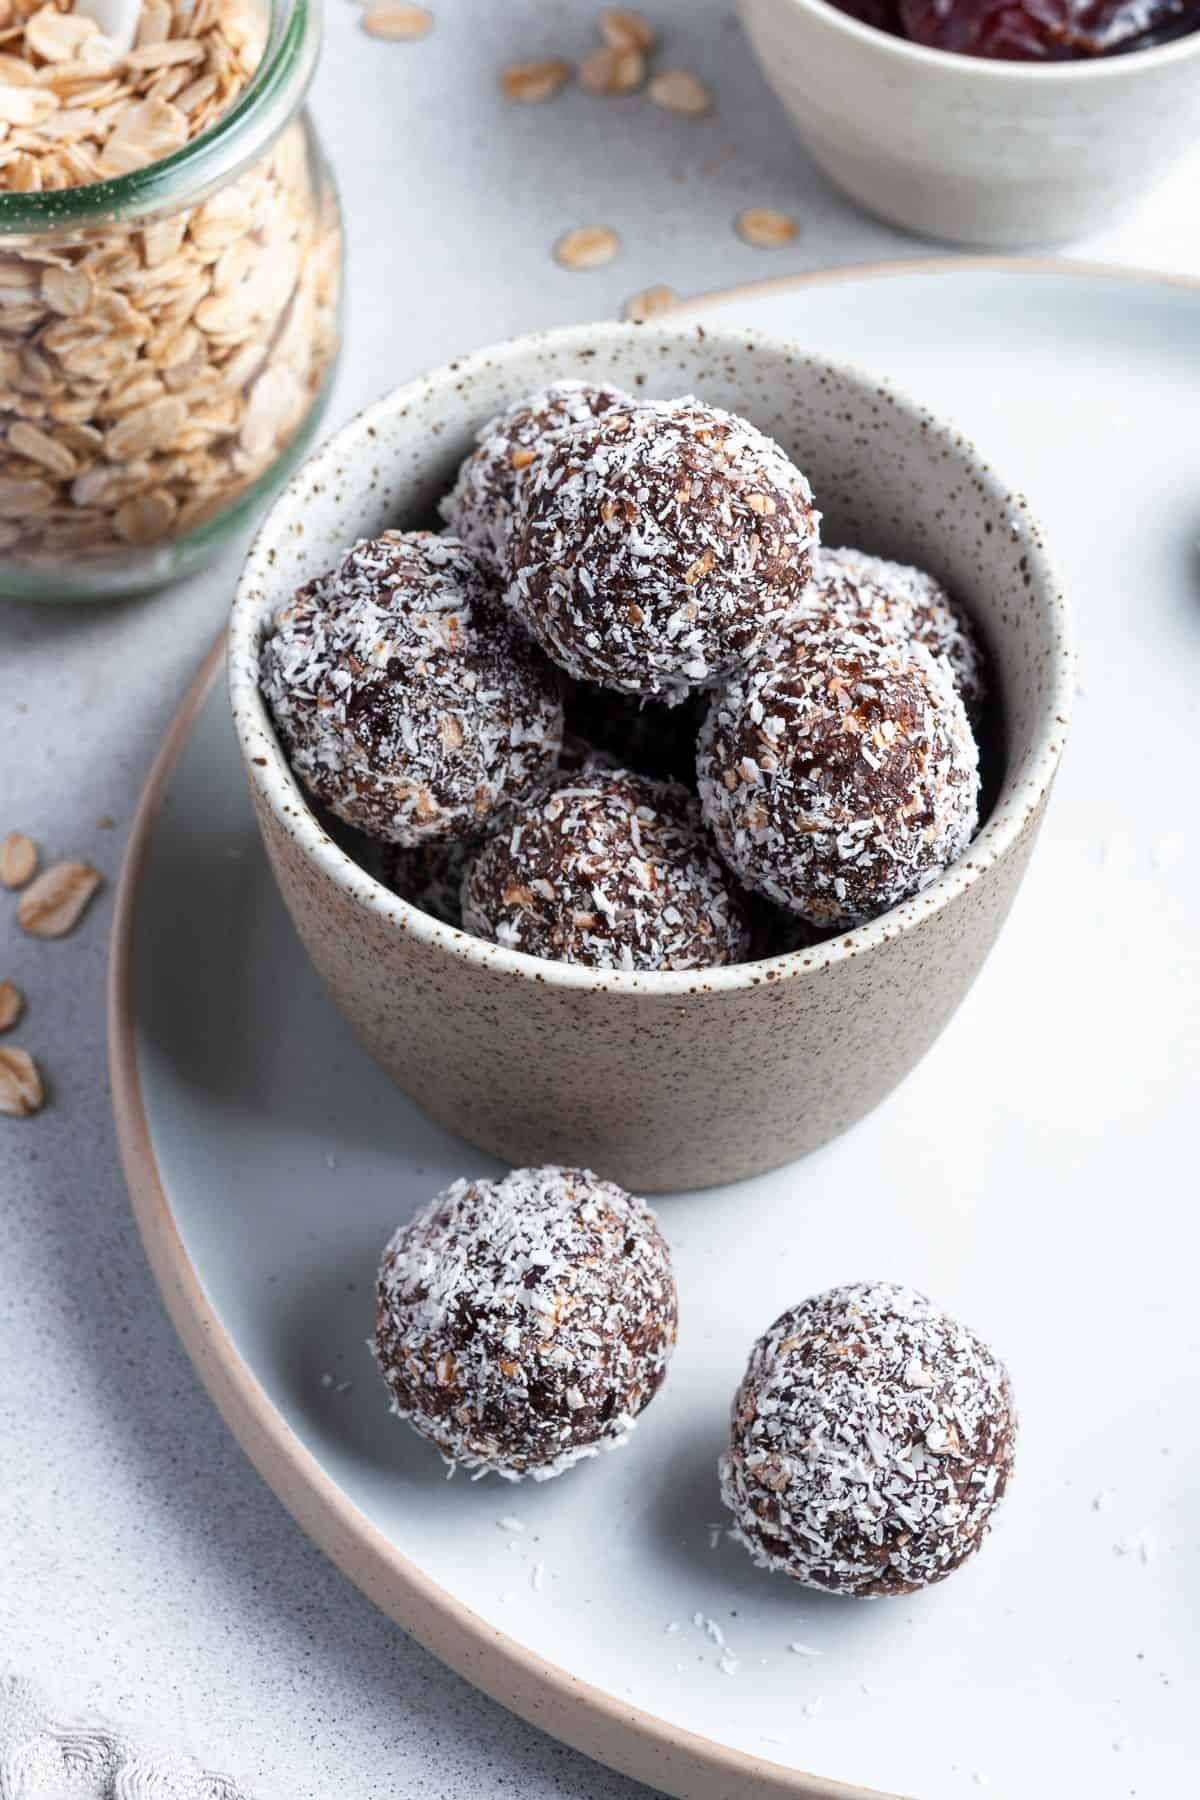 Bowl of bliss balls, sitting on a plate with some bliss balls around the edge, and a jar of oats on the side.